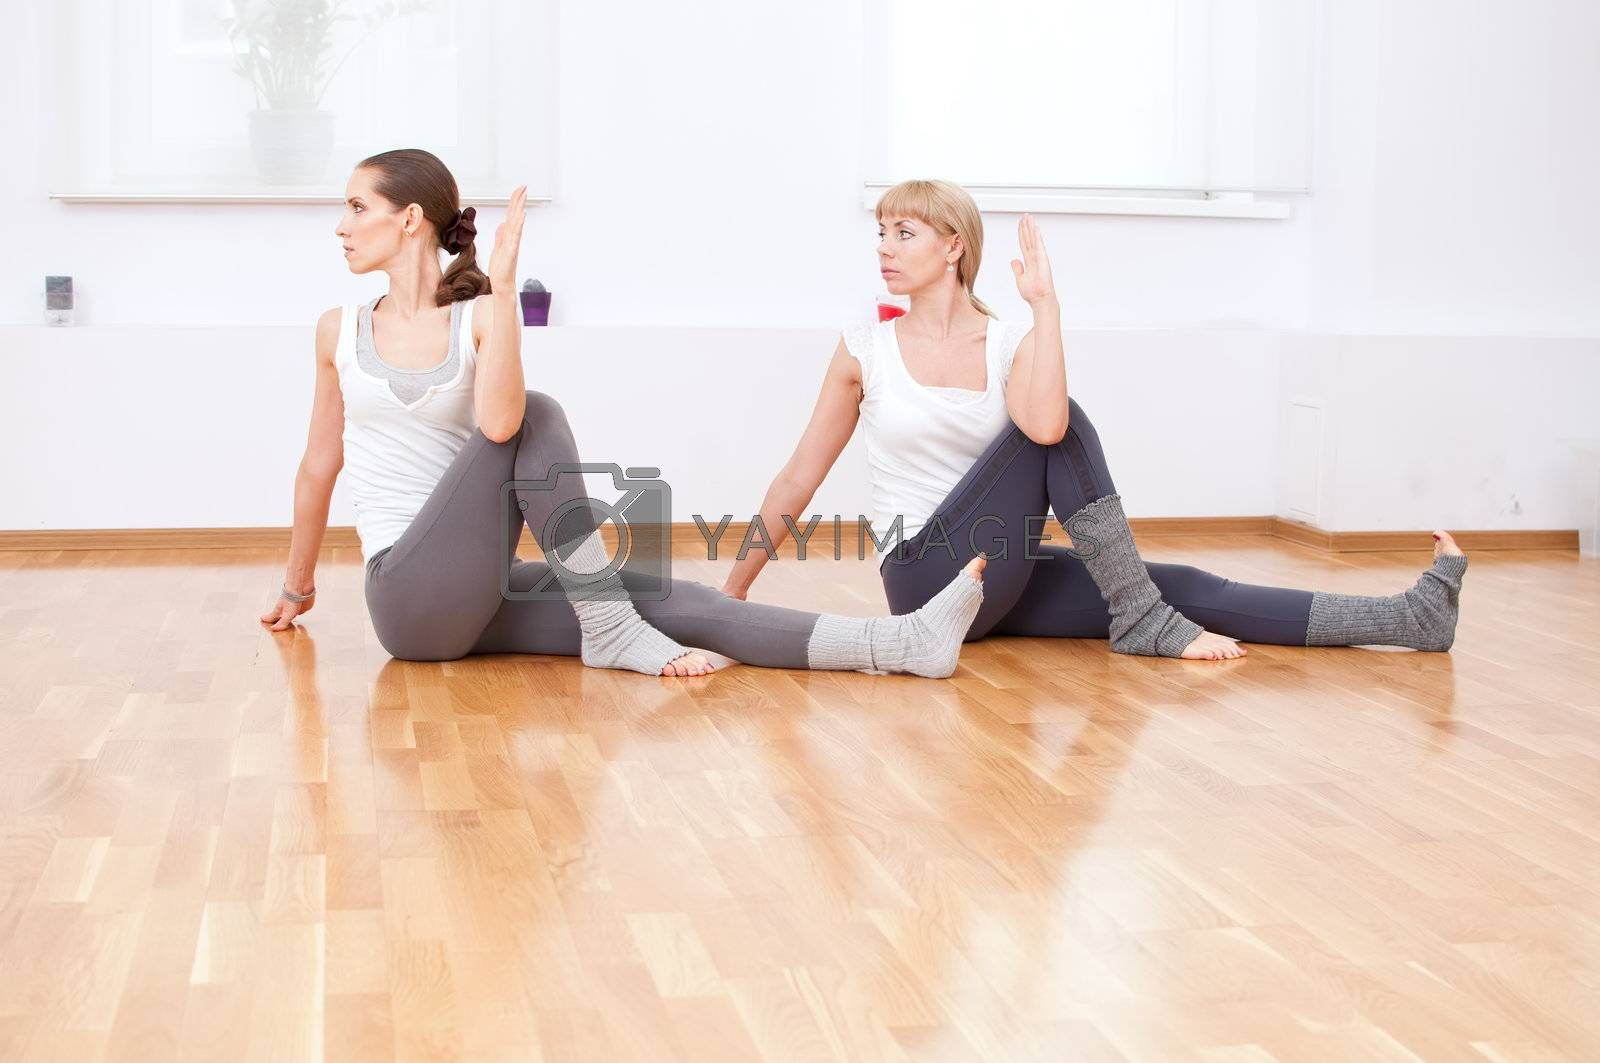 Group of sport women in the gym centre doing stretching fitness exercise. Yoga